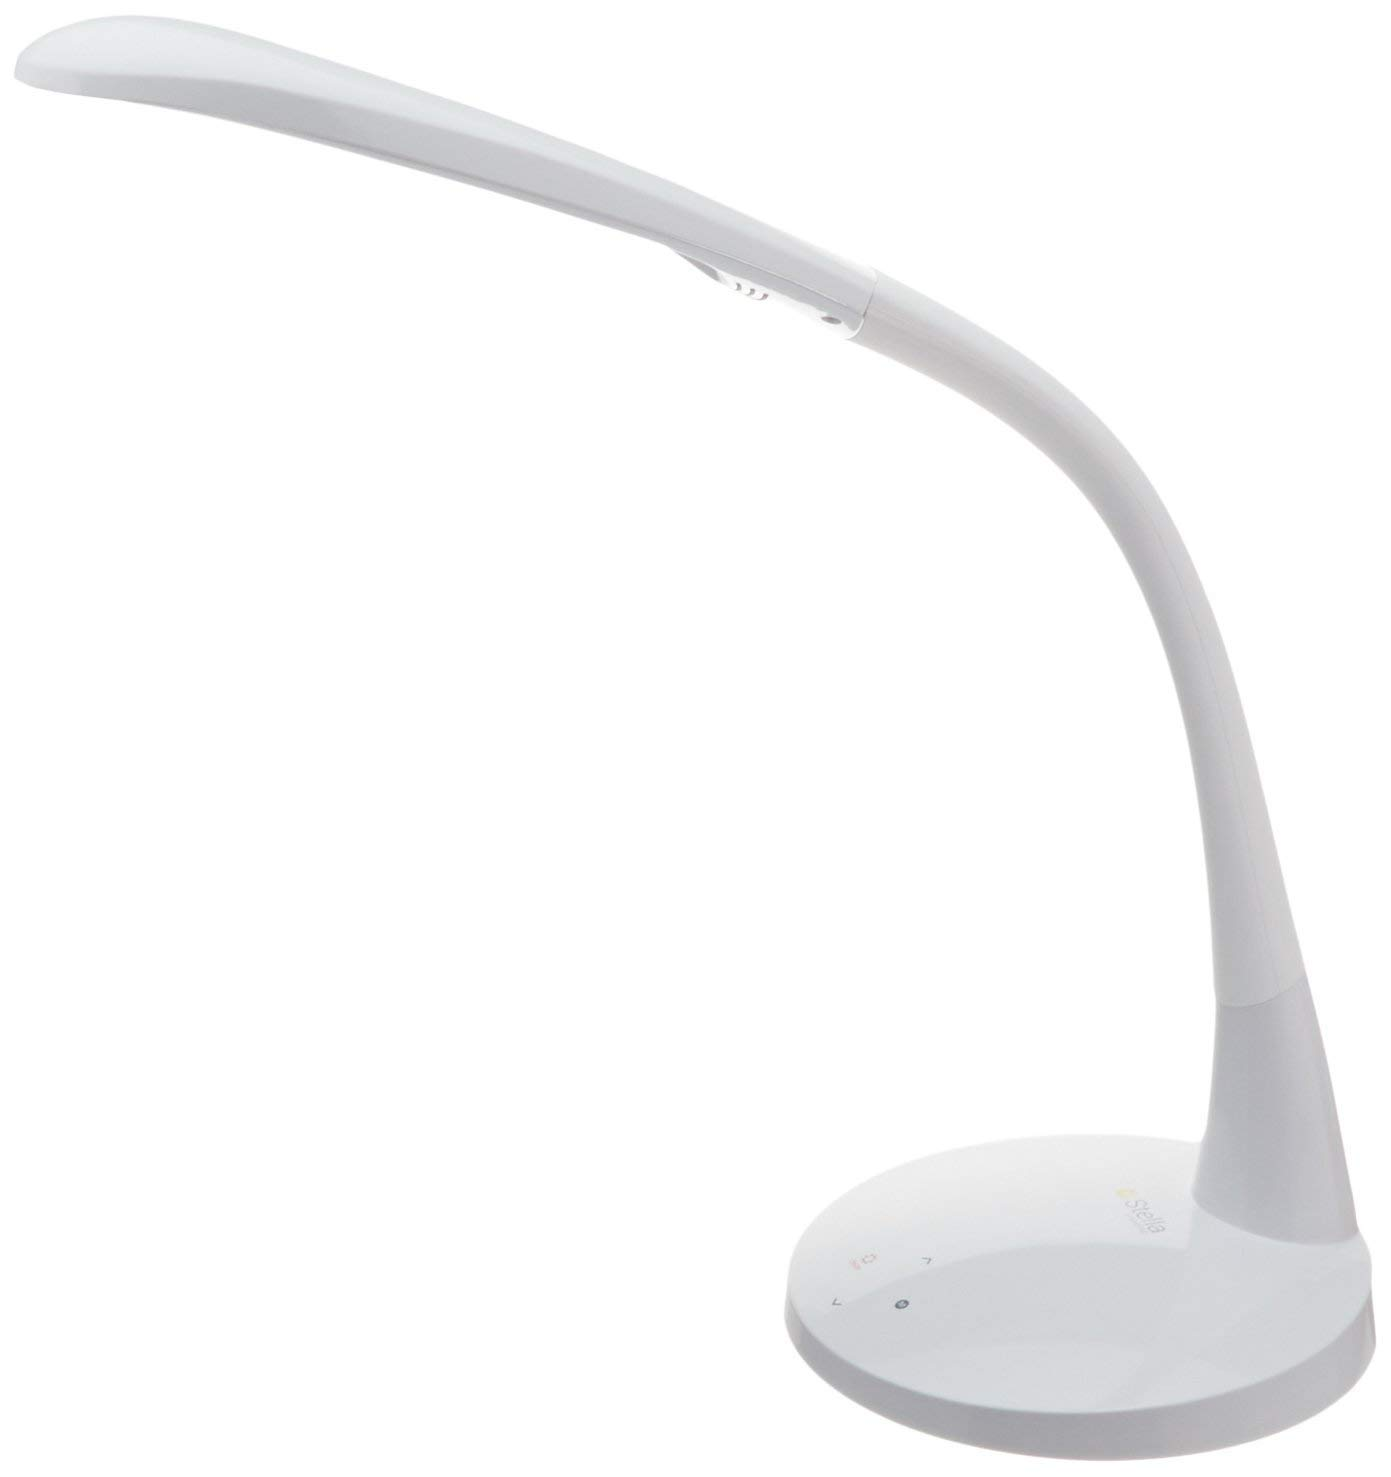 Stella Original Premium LED Desk Task Lamp (White, 10W) Doctor Prescribed Low Vision Tri Color Spectrum Desk Light with 5 Dimming Options - Home or Office Sunlight Lamp for Arts & Crafts, Dry Eye by Stella Lighting